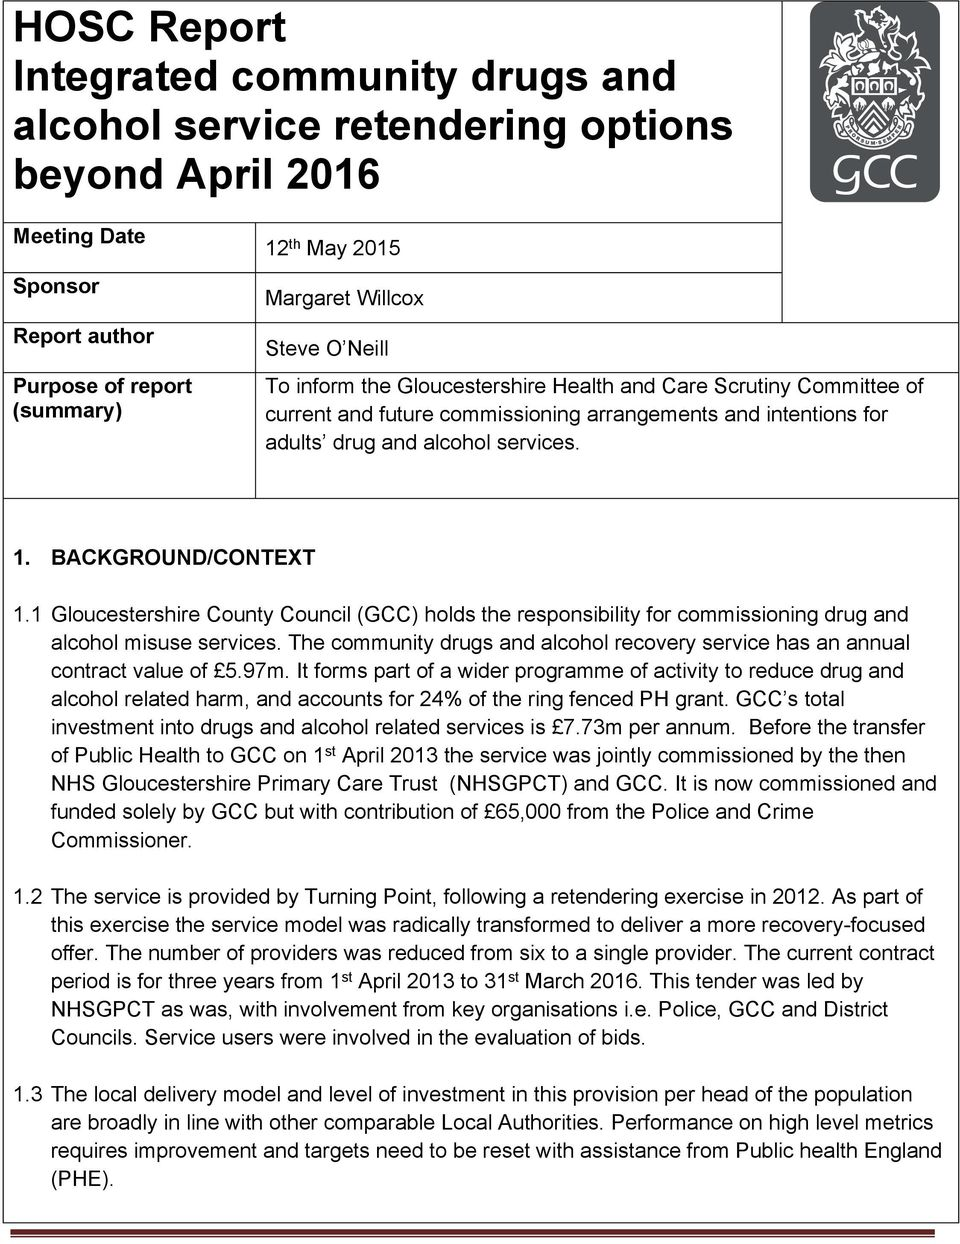 1 Gloucestershire County Council (GCC) holds the responsibility for commissioning drug and alcohol misuse services. The community drugs and alcohol recovery service has an annual contract value of 5.